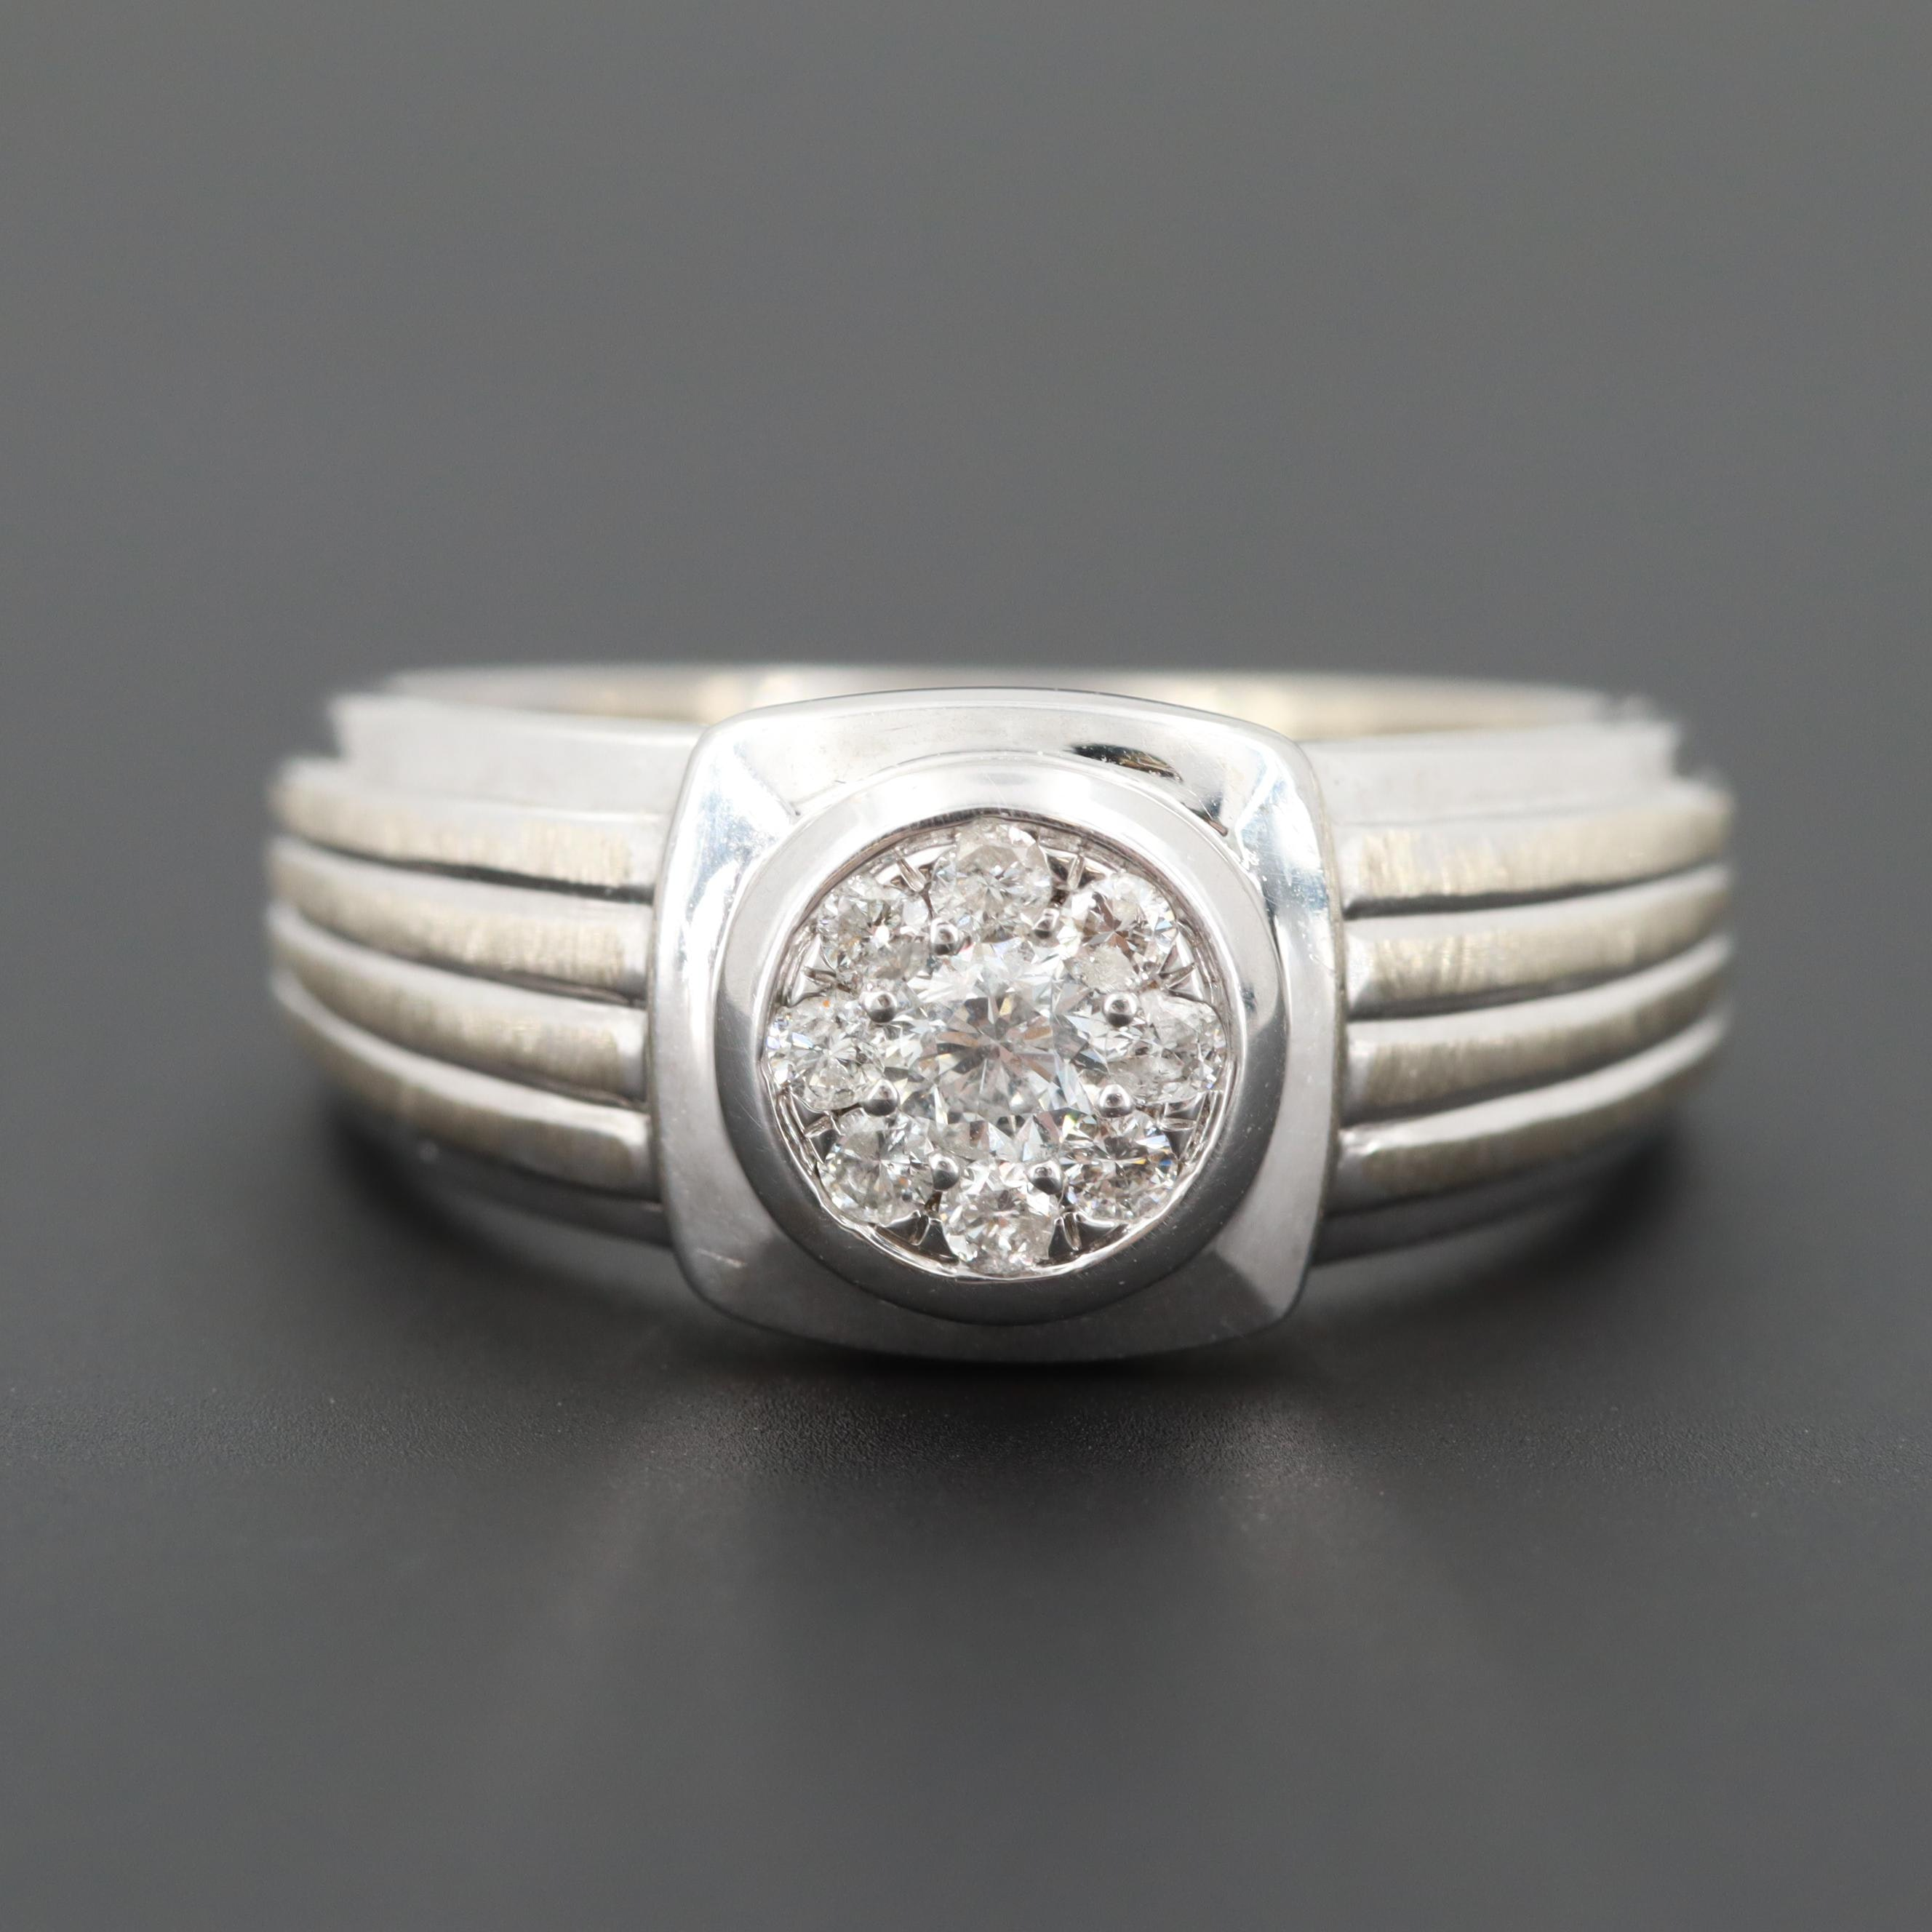 Art Deco 10K White Gold Diamond Ring